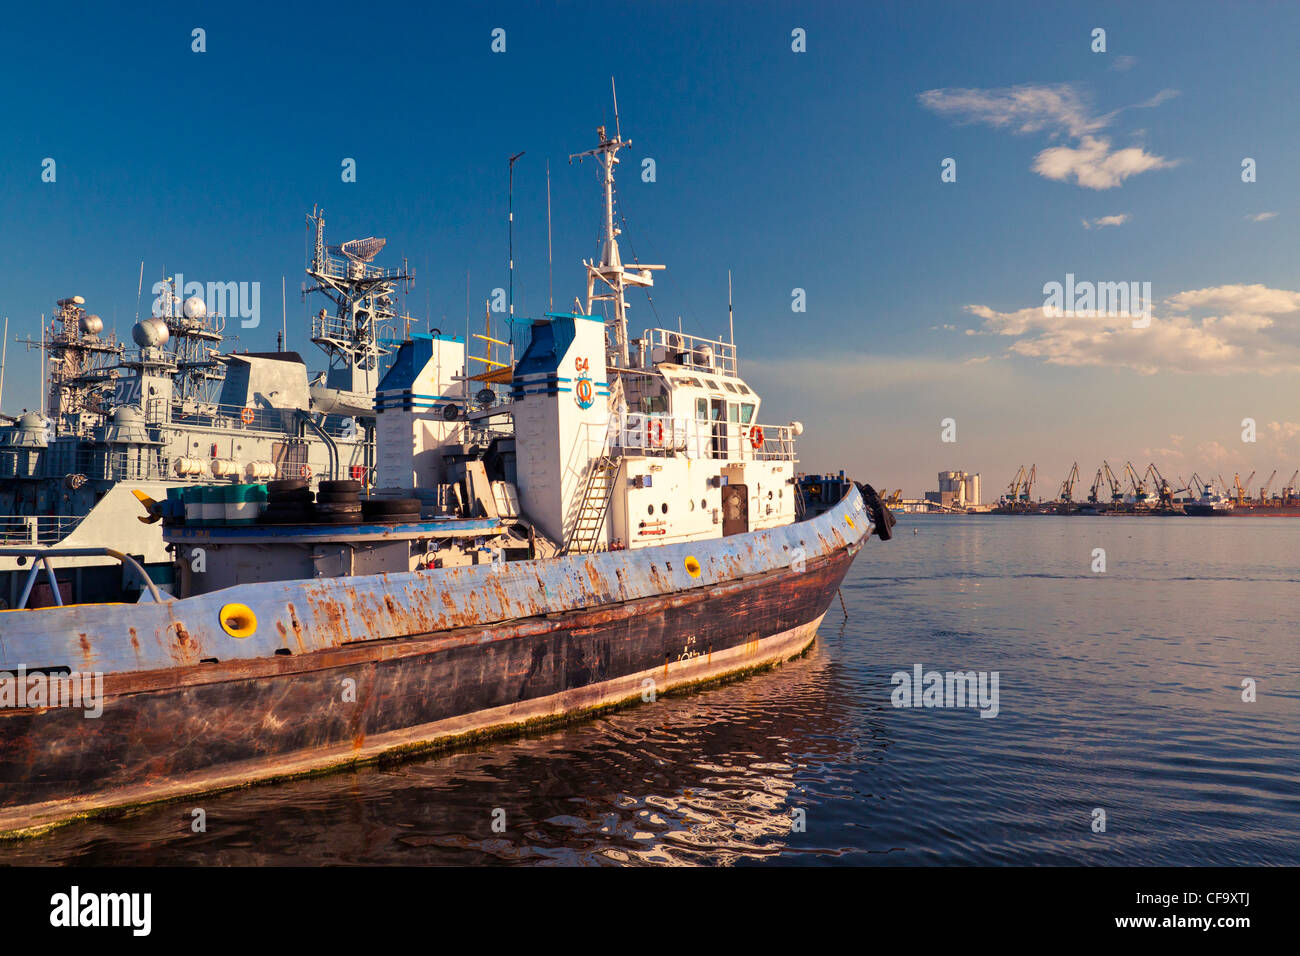 Old towboat docked in port. - Stock Image